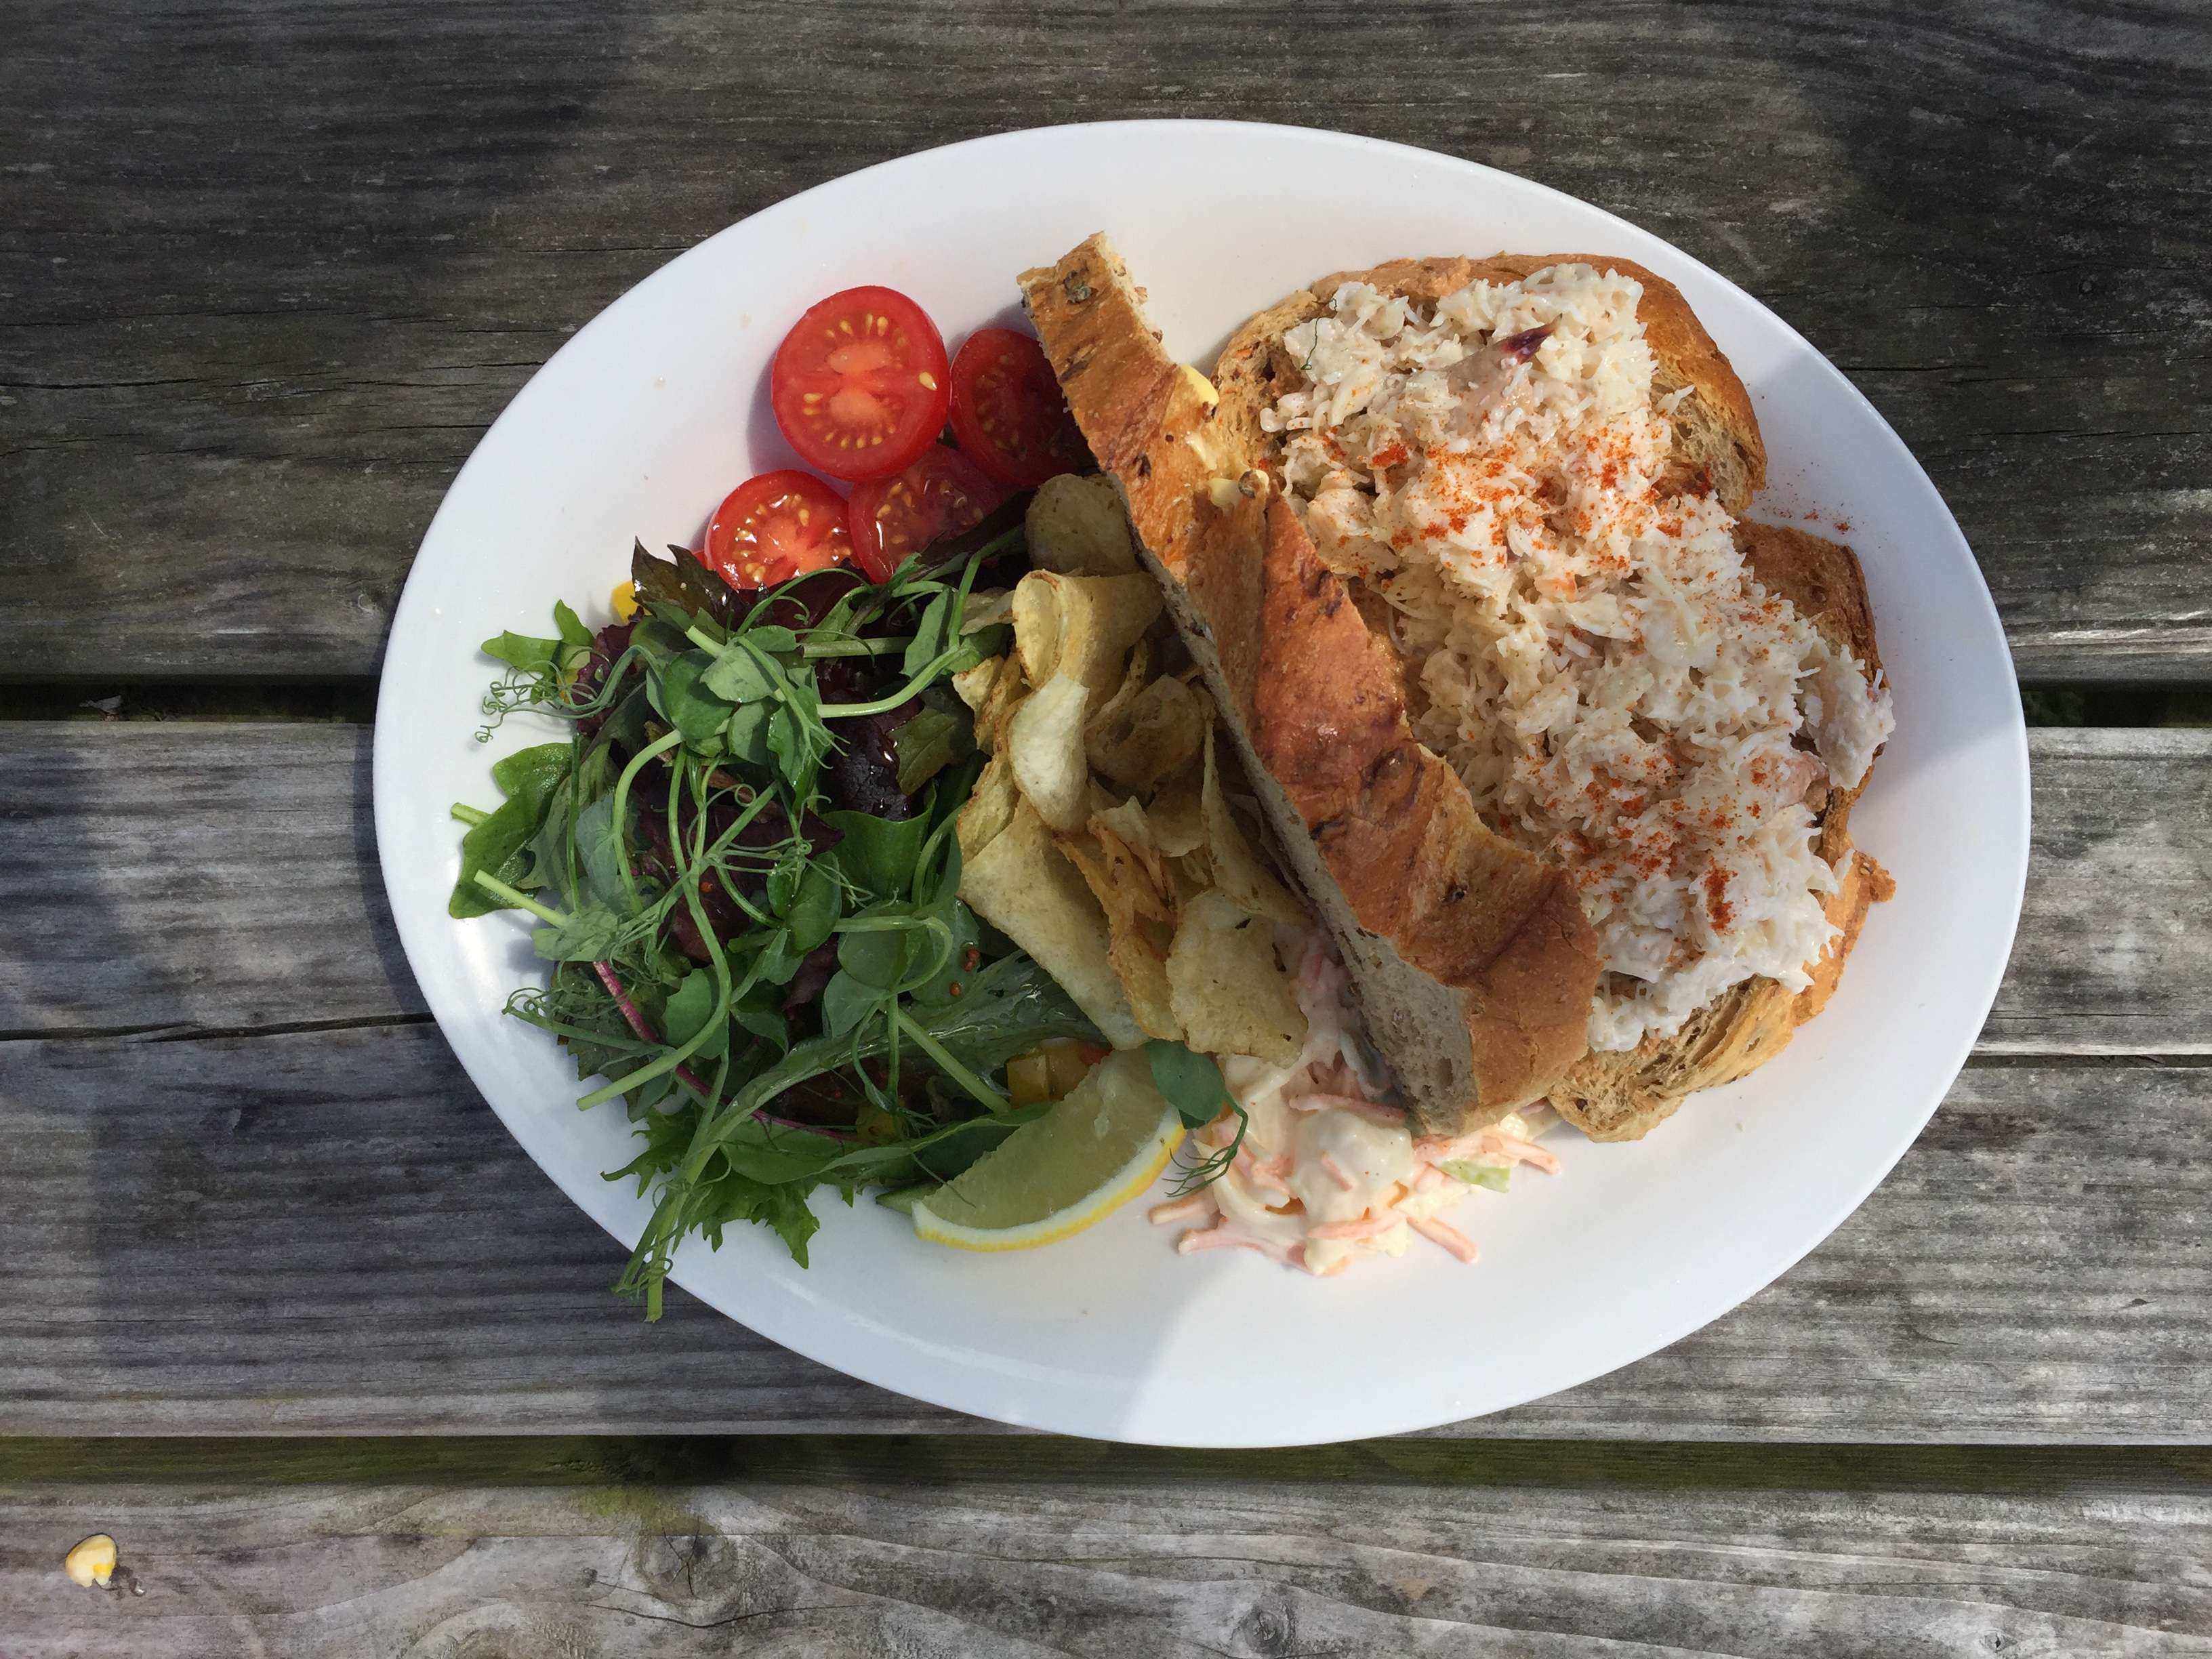 White plate with an open crab sandwich and salad